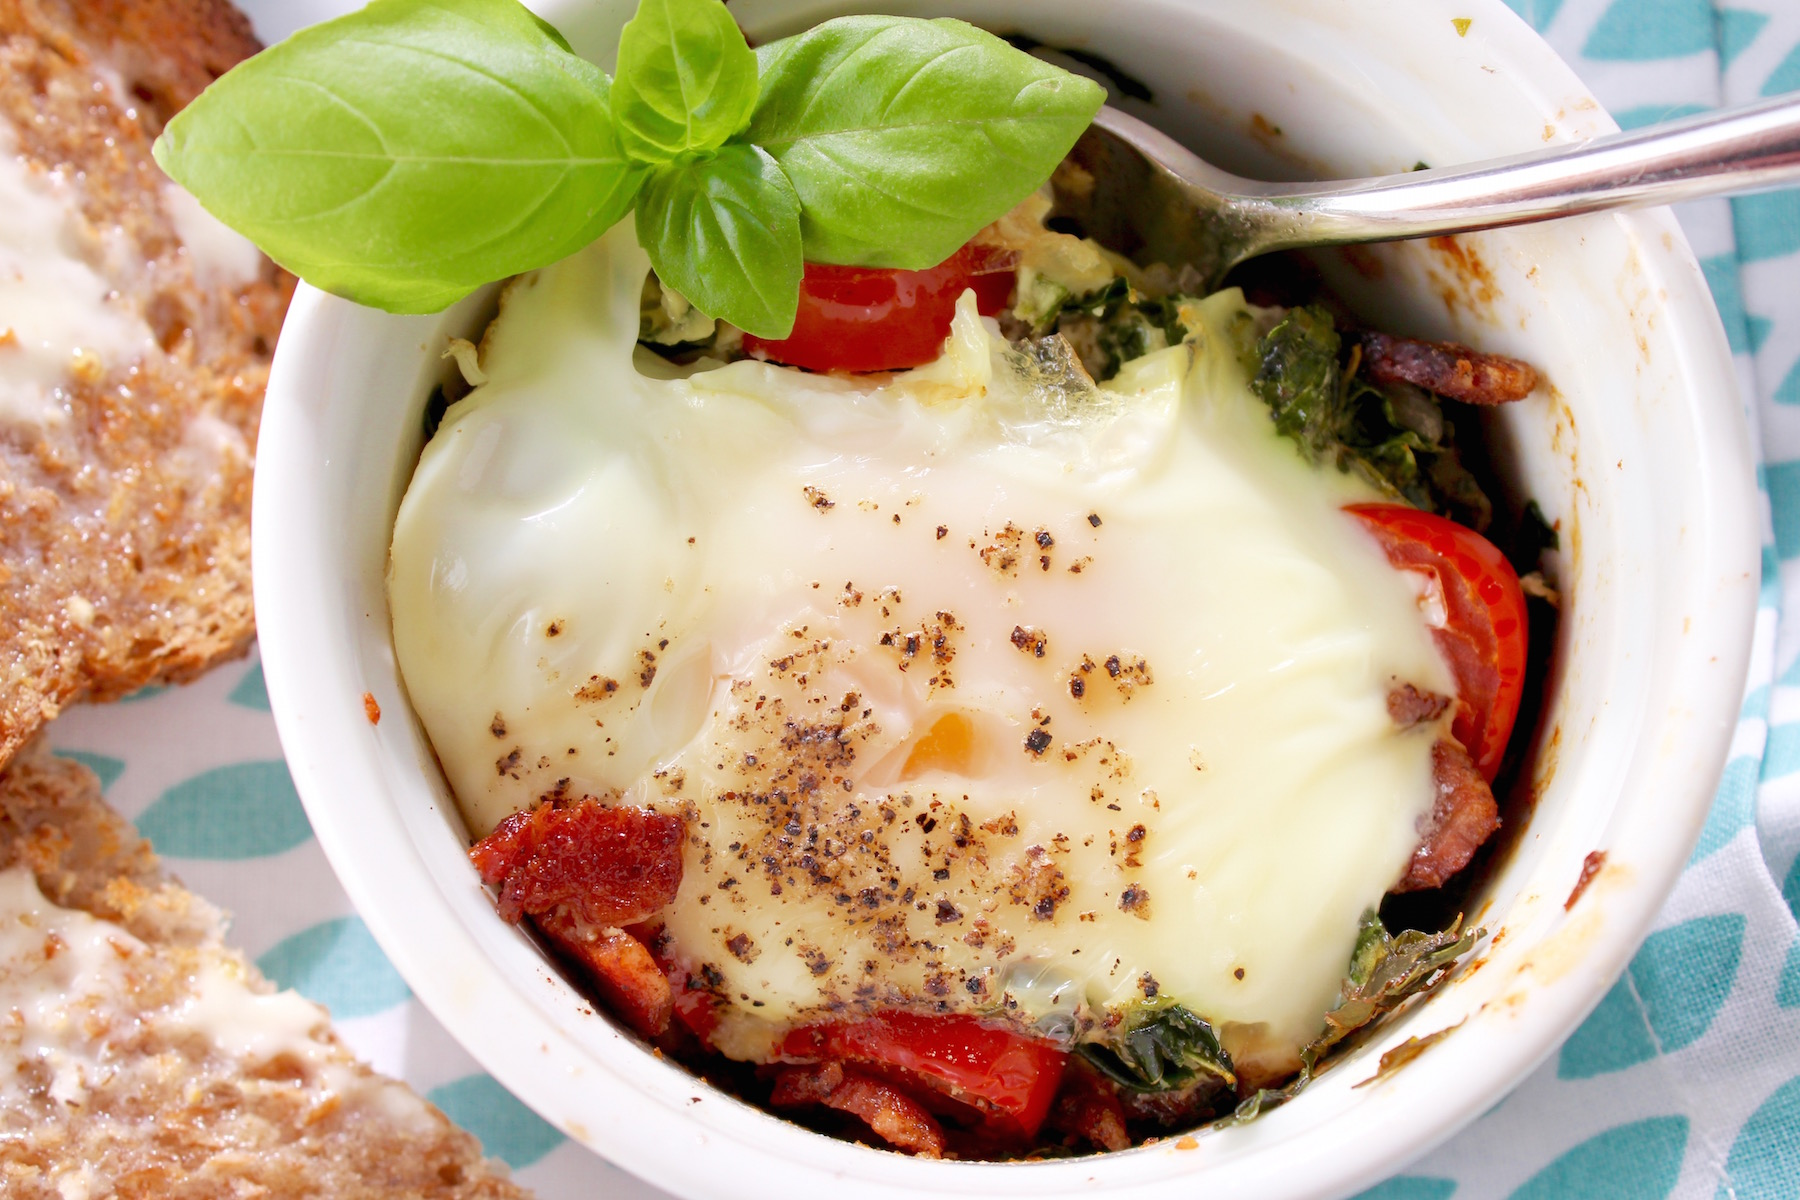 Baked Egg with Moringa